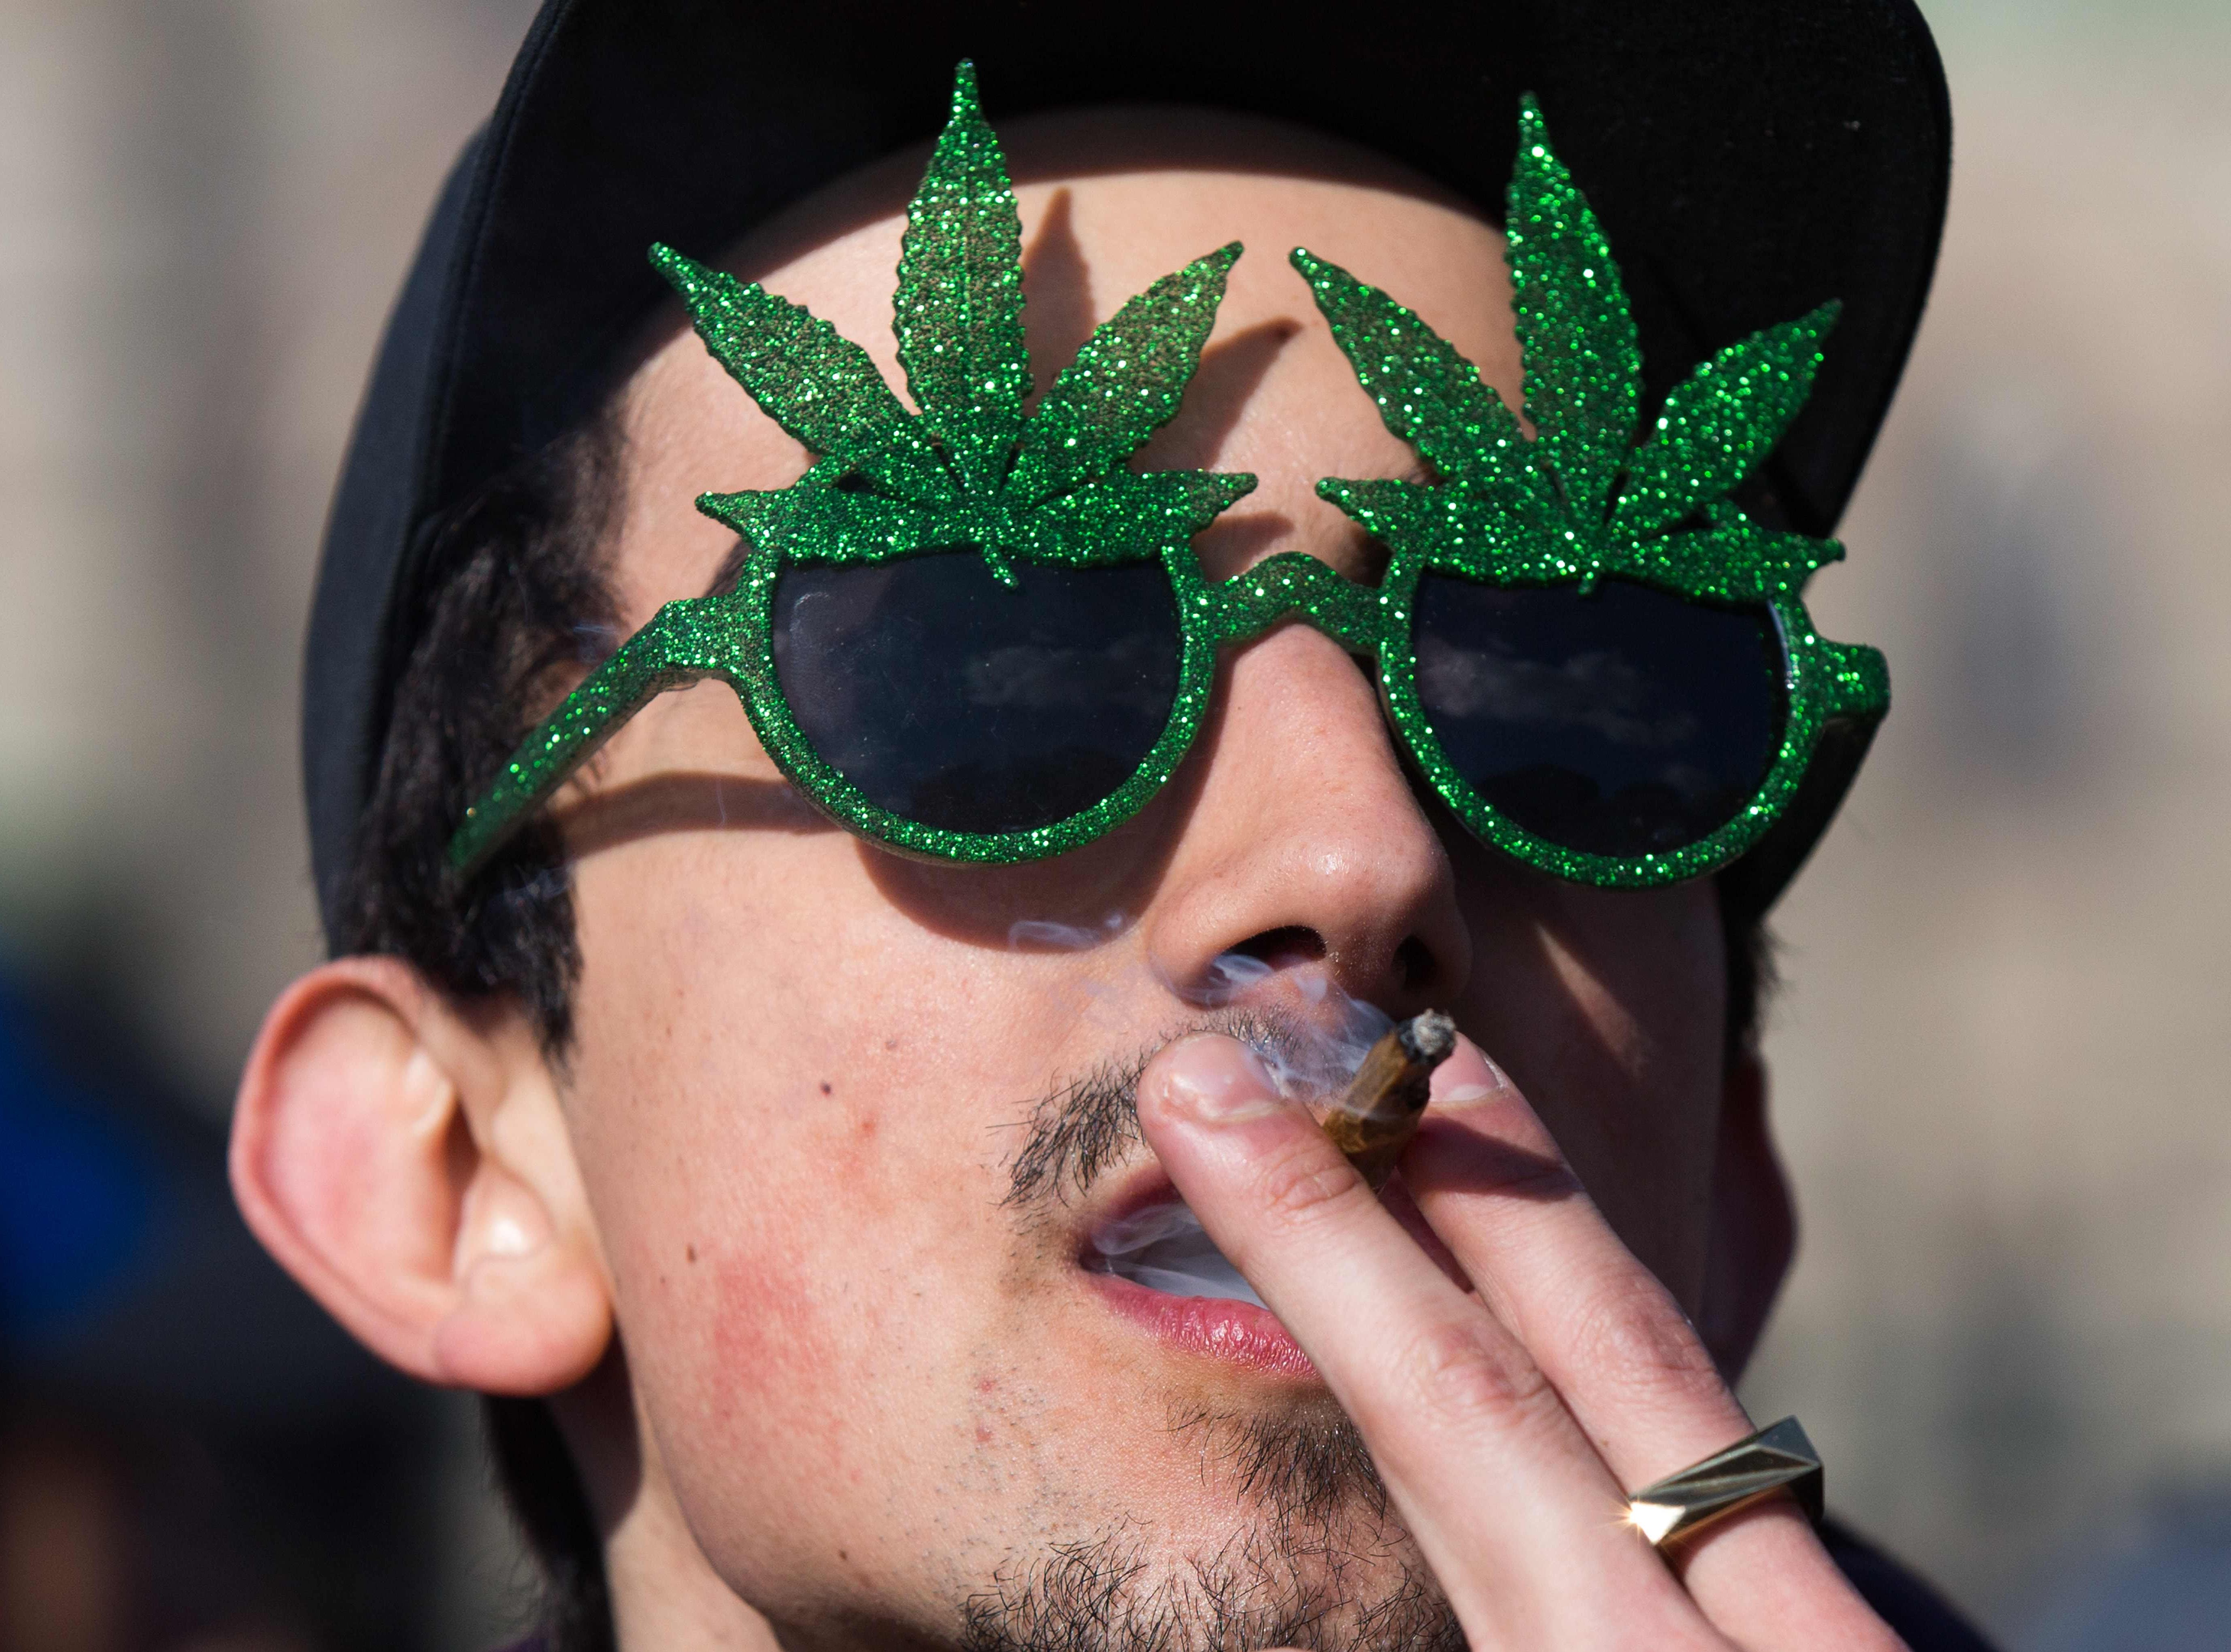 Canada starts legal marijuana sales Wednesday as world watches closely